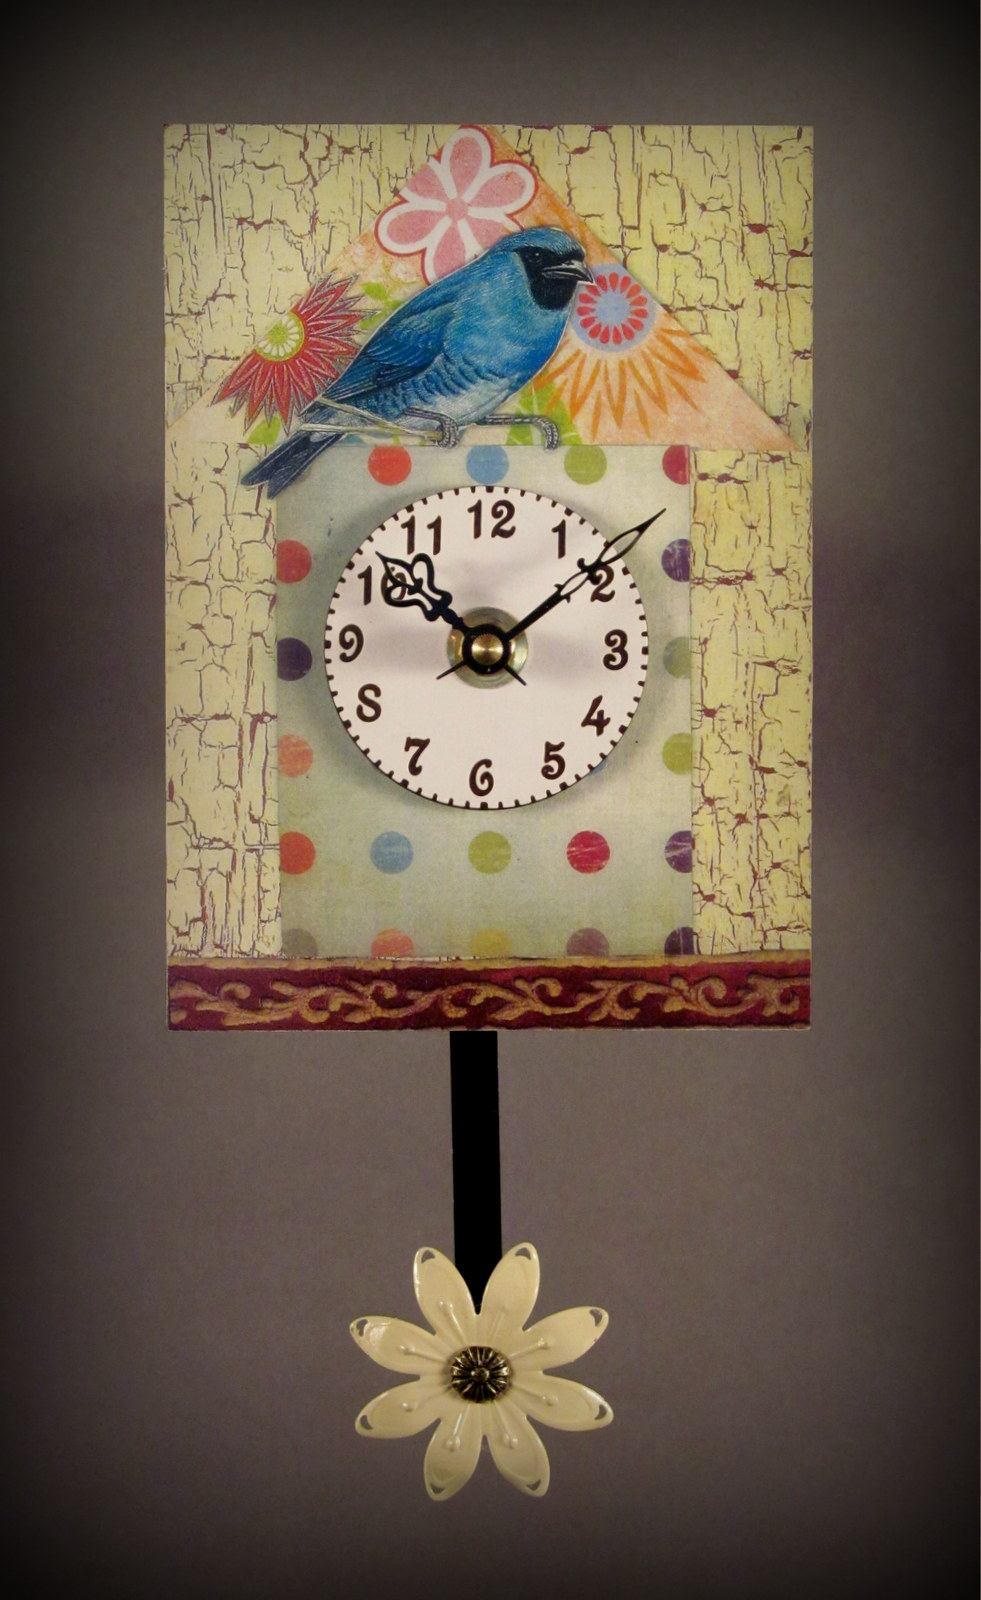 PAPER ART OVER A WOOD BACKING. THIS LITTLE GEM MEASURES 5 X 9 INCHES. IT RUNS ON A SINGLE AA BATTERY. EASY AS CAN BE!